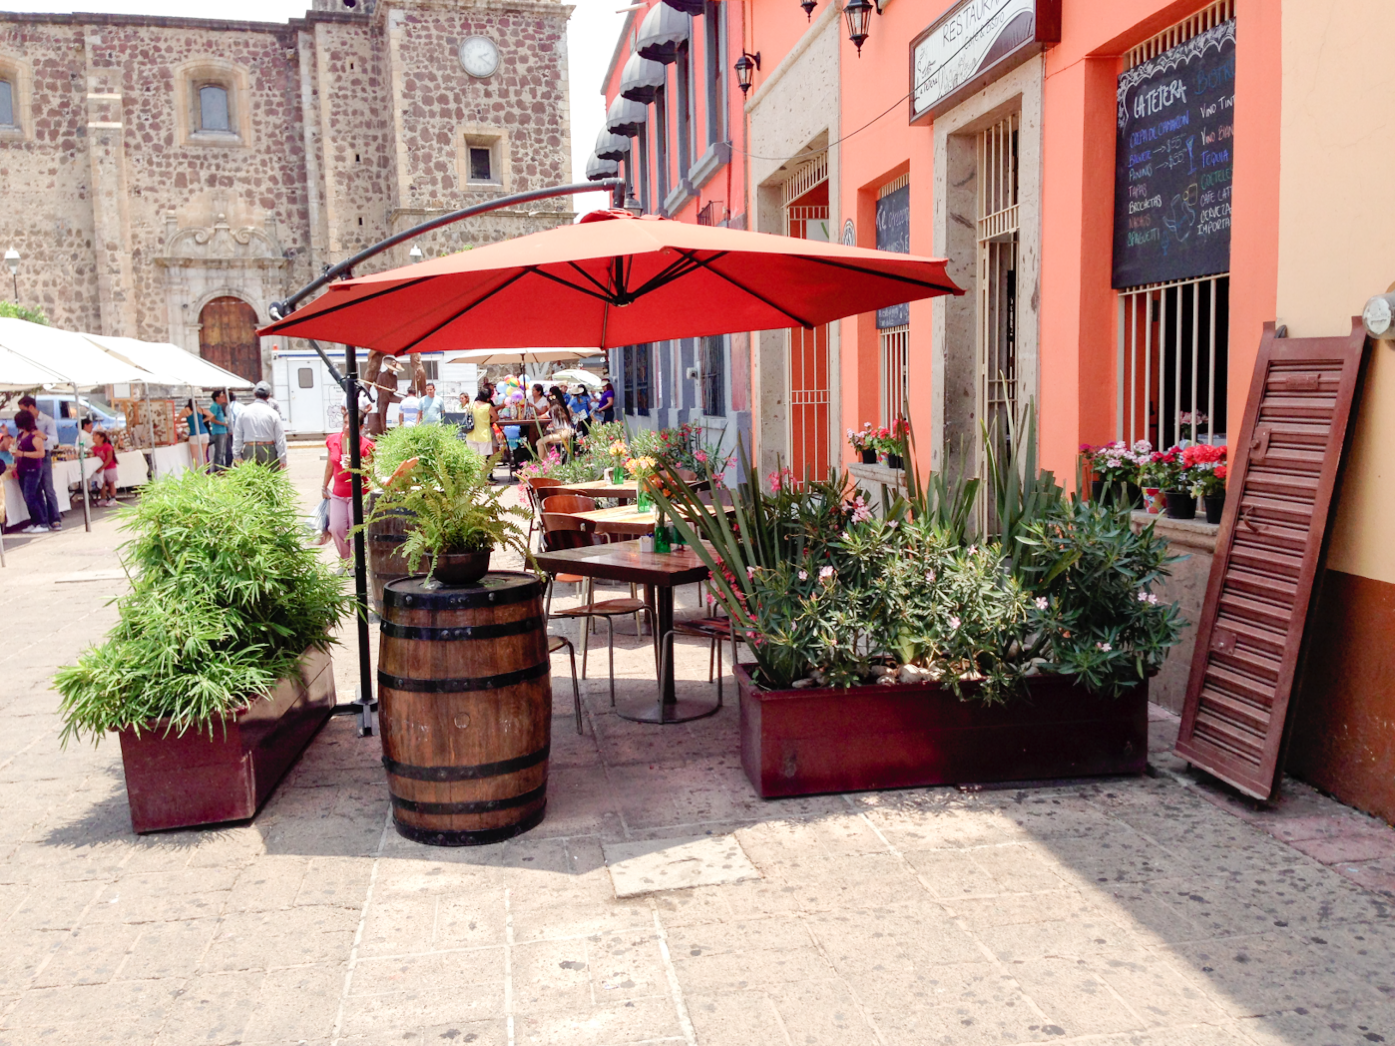 Streets of Tequila, Mexico via www.surelysimple.com